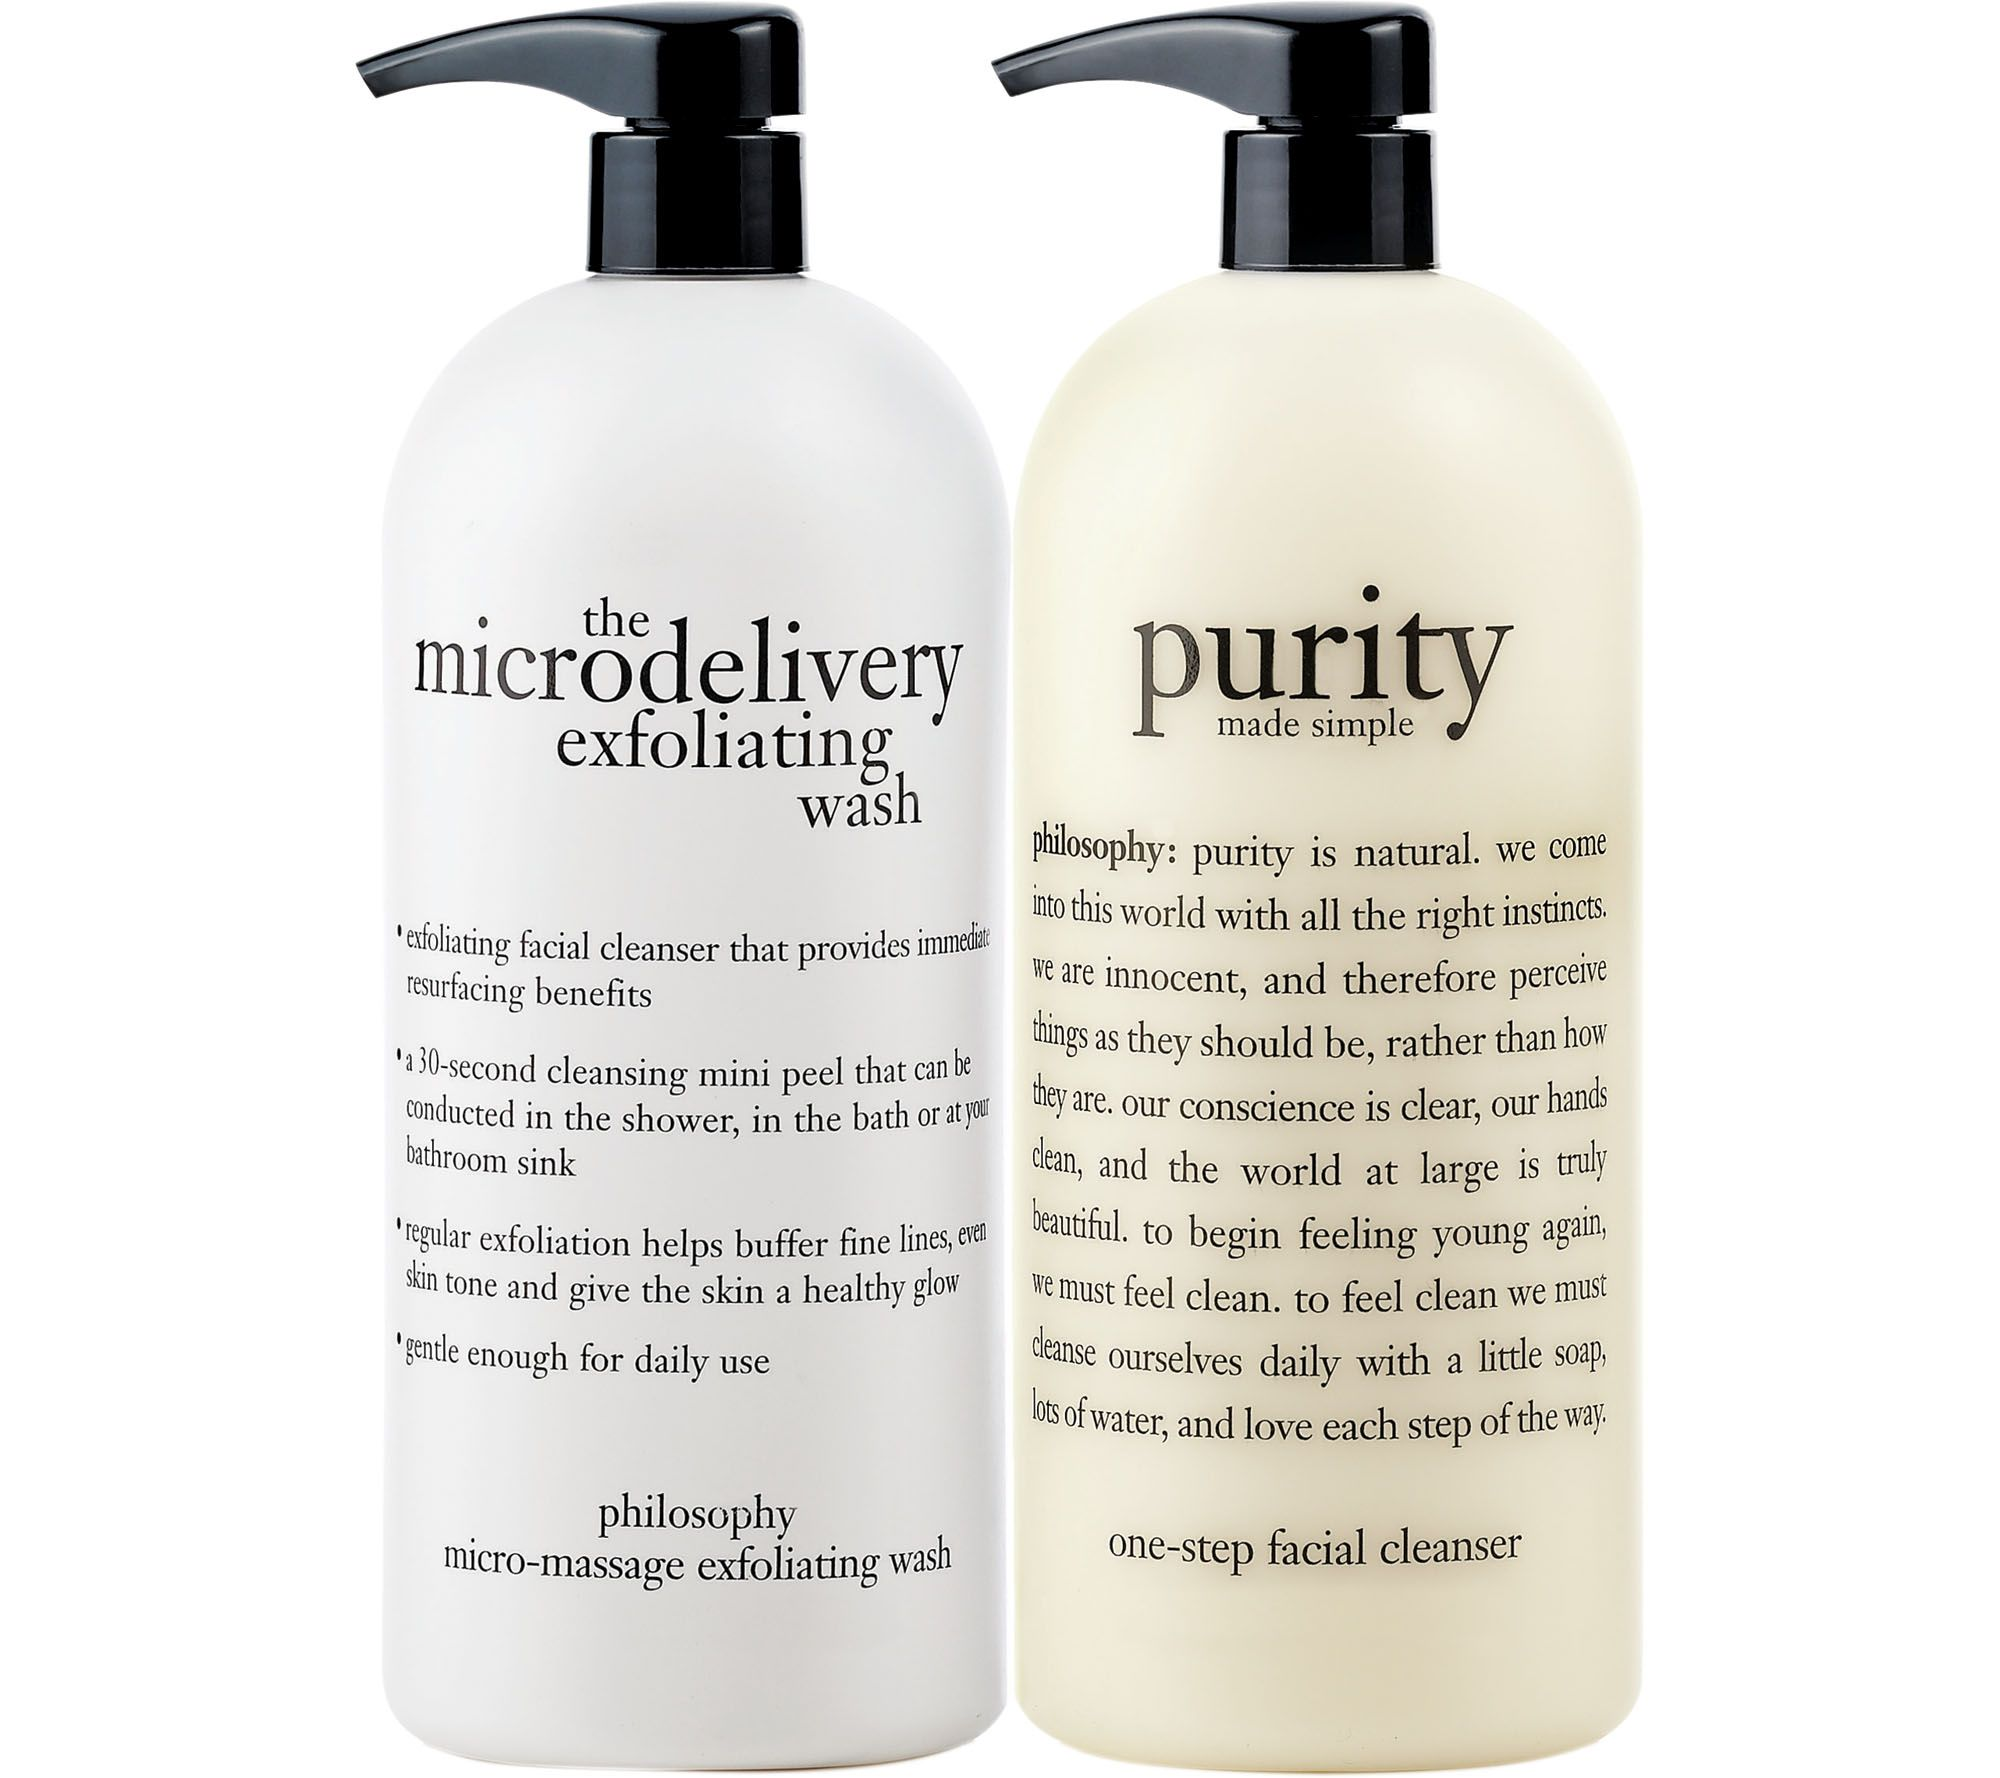 philosophy super size purity made simple and microdelivery